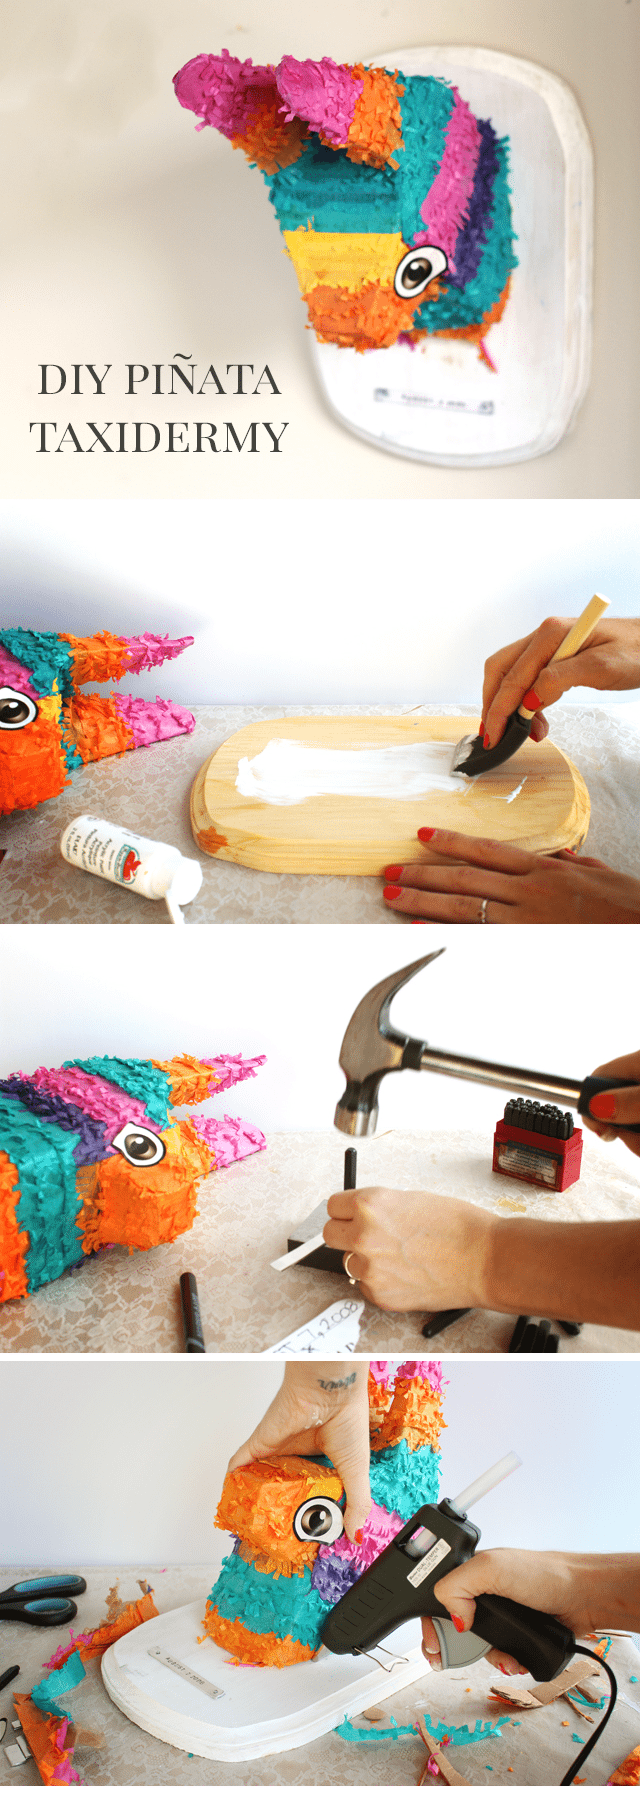 DIY Taxidermy Pinata Tutorial - Shrimp Salad Circus